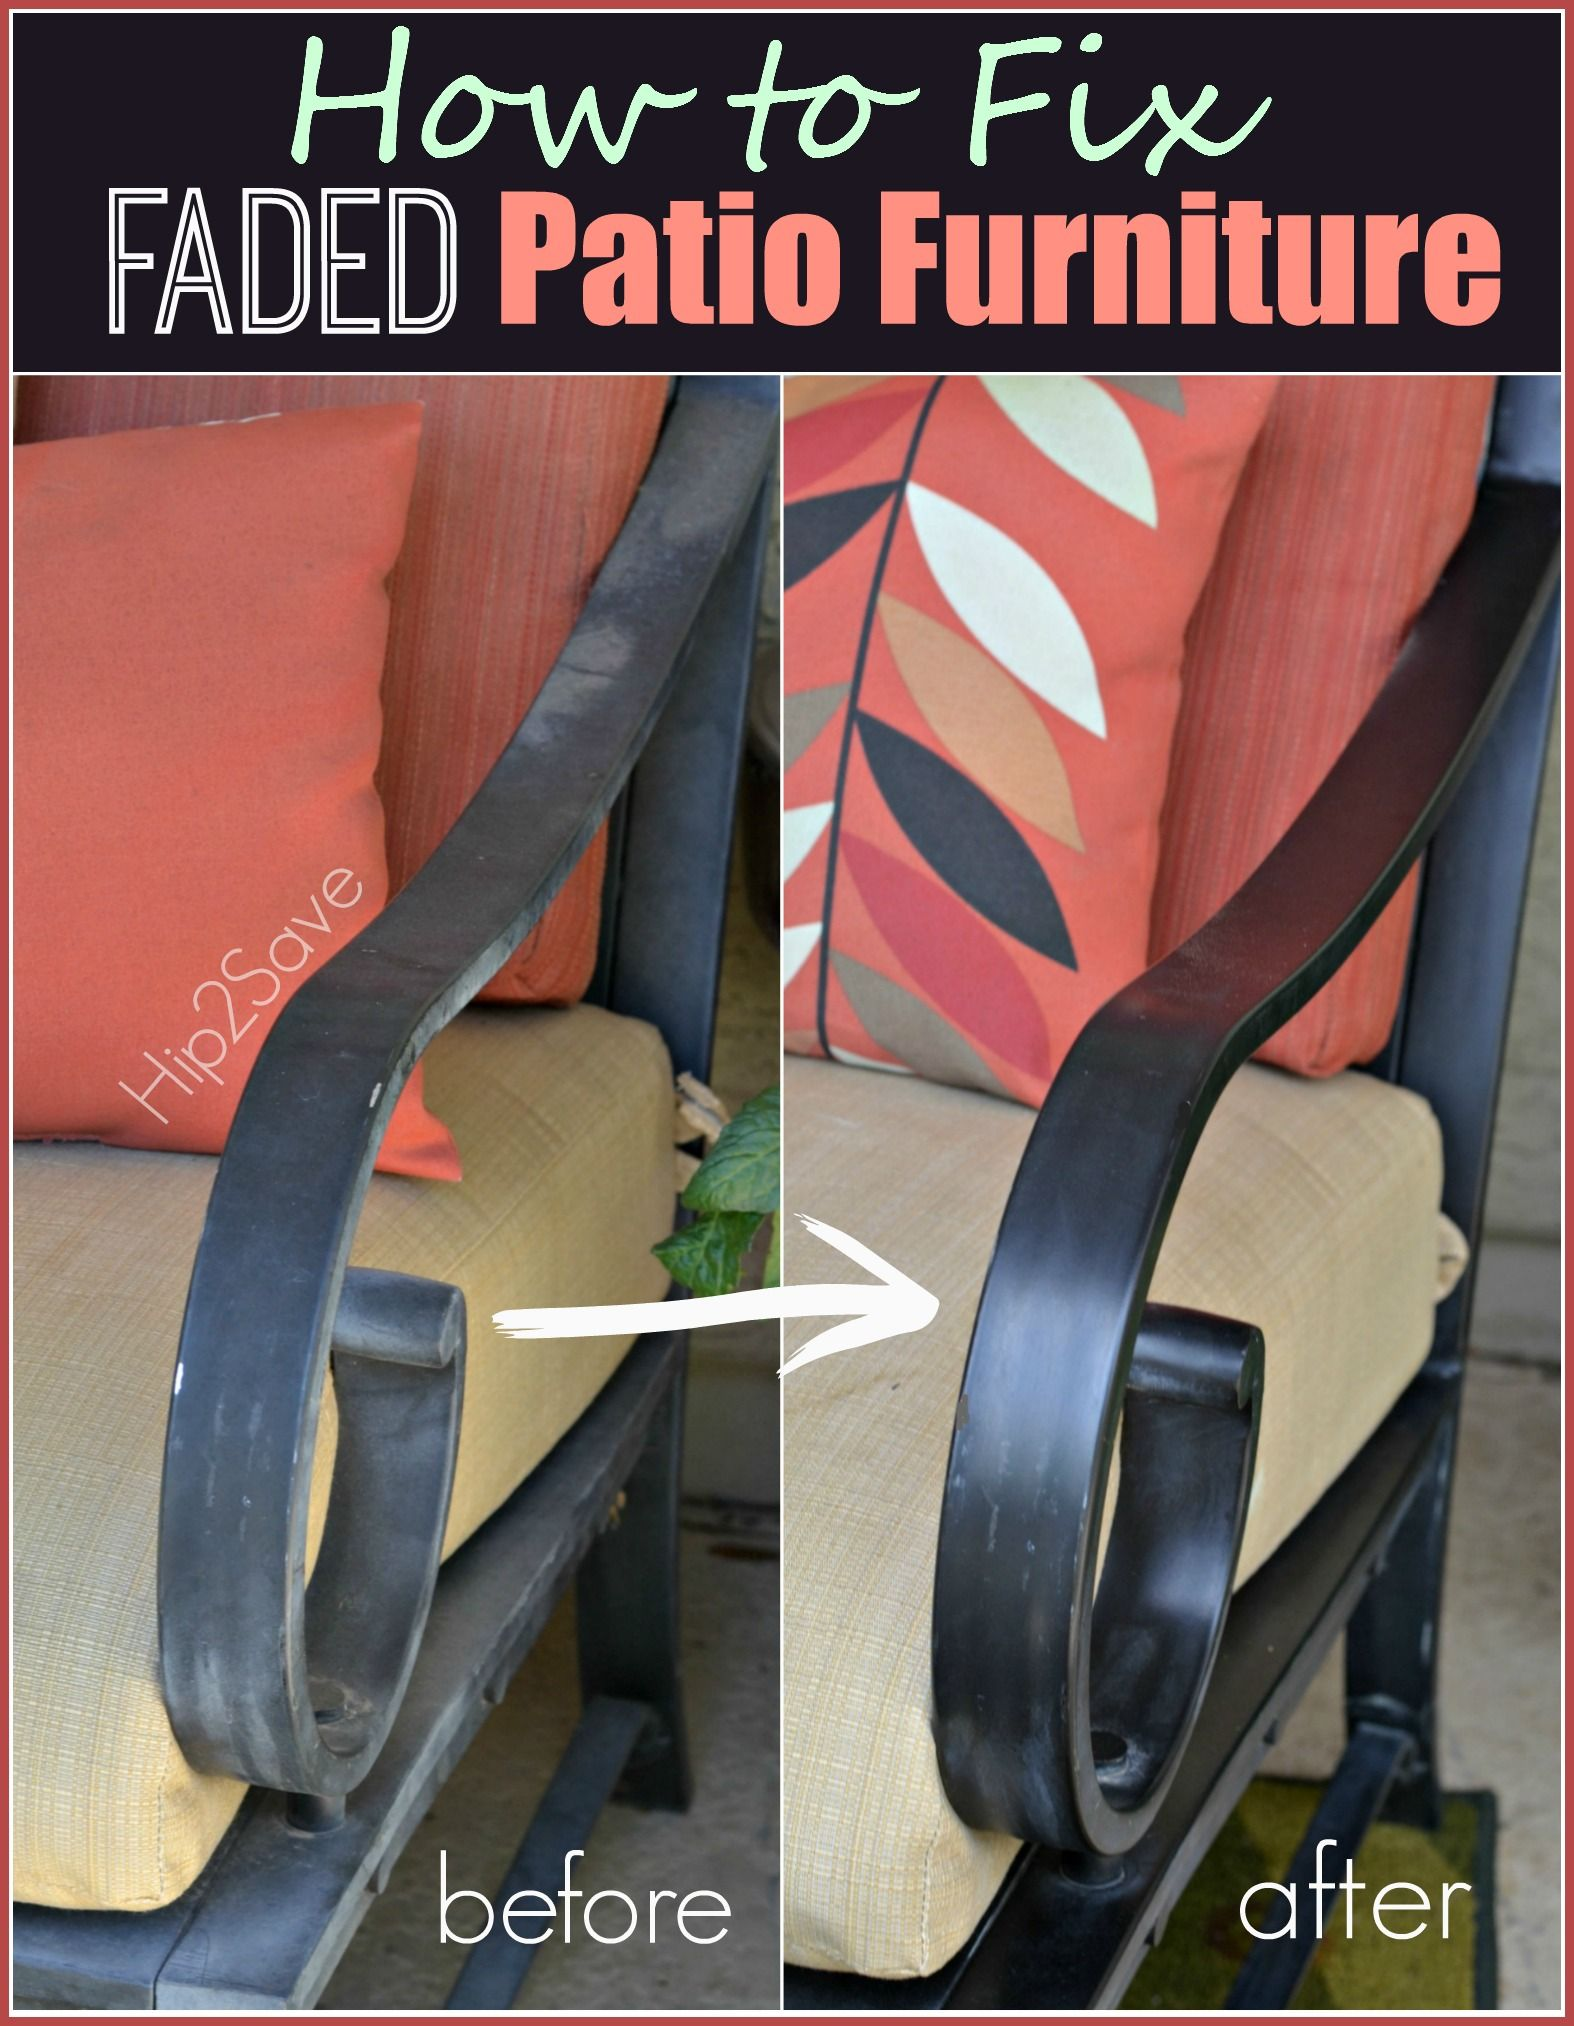 How To Fix Faded Aluminum Patio Furniture Using Just One Common Household Item Hip2save